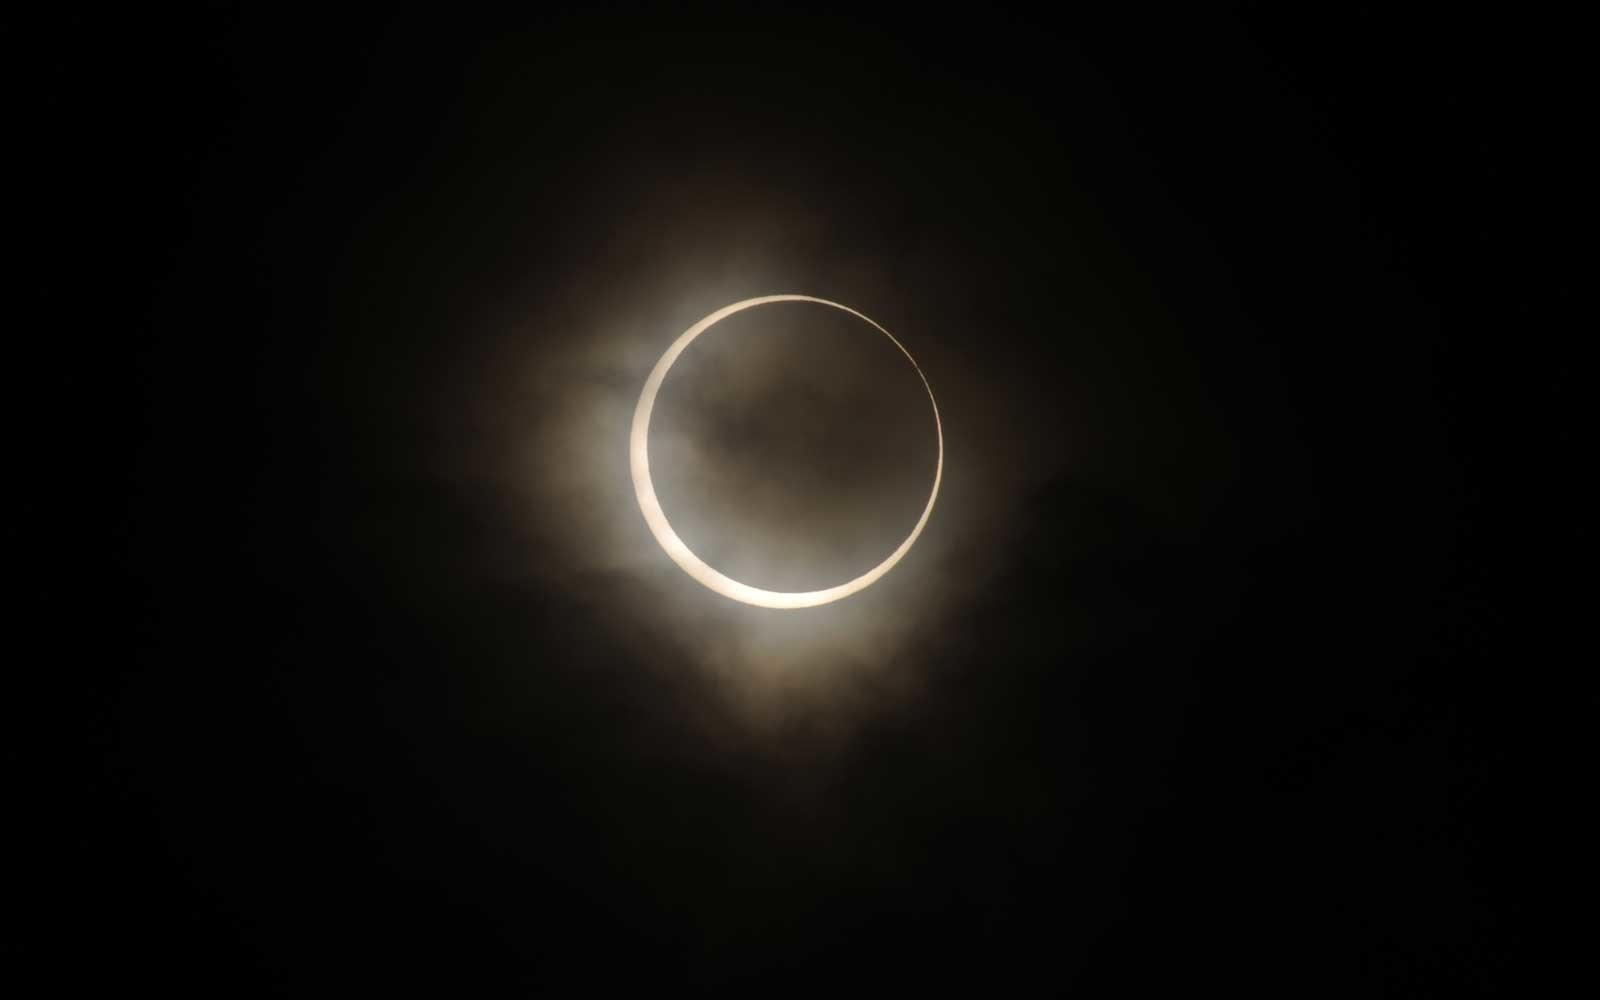 Annular Solar Eclipse is observed